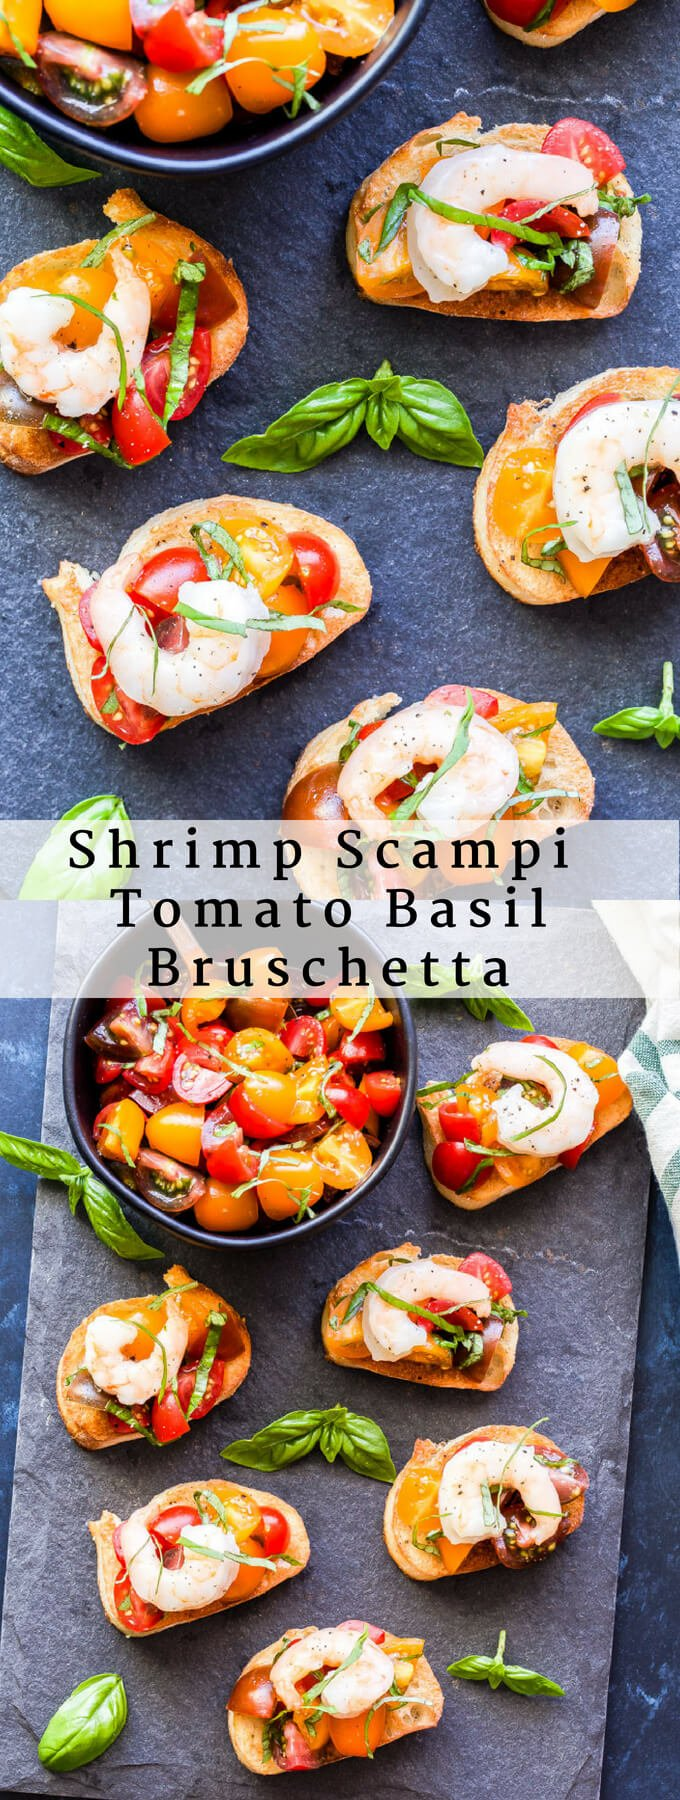 Shrimp Scampi Tomato Basil Bruschetta is a great way to turn classic bruschetta into something even more delicious! Super easy to make and perfect for an appetizer or even a main dish. #shrimp #bruschetta #shrimpscampi #appetizer